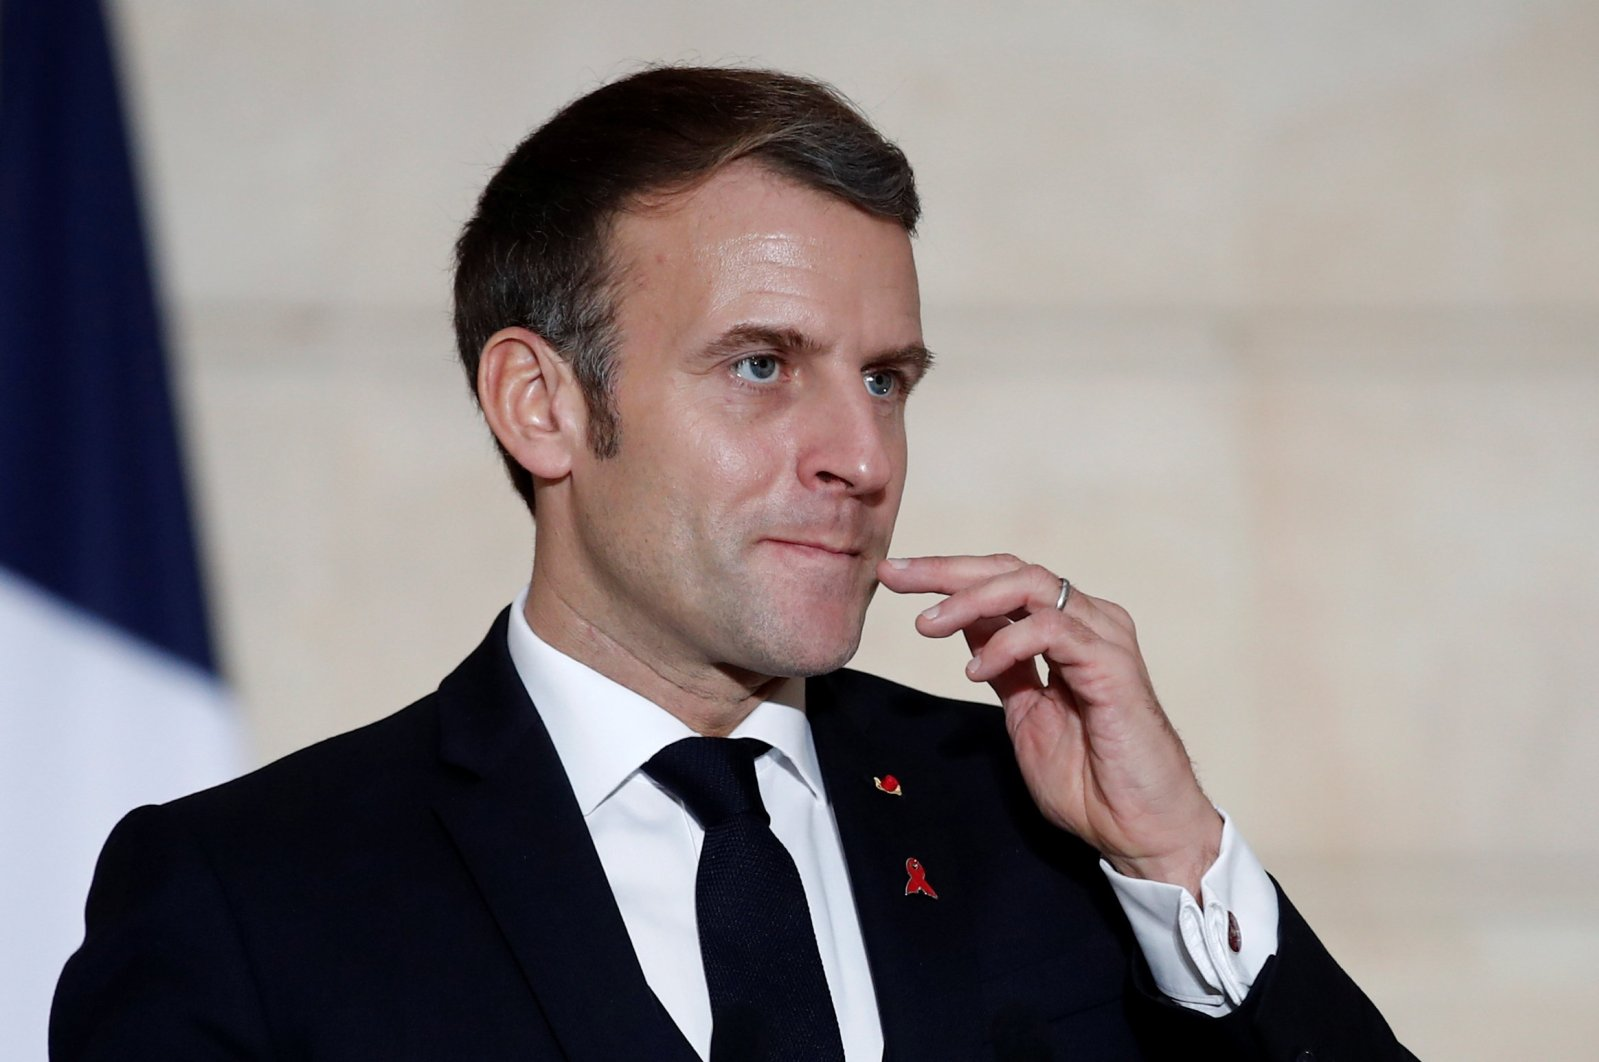 French President Emmanuel Macron gestures as he delivers a joint statement with Belgium's Prime Minister Alexander De Croo (not seen) after a meeting at the Elysee Palace in Paris, France, Dec. 1, 2020. (Reuters Photo)